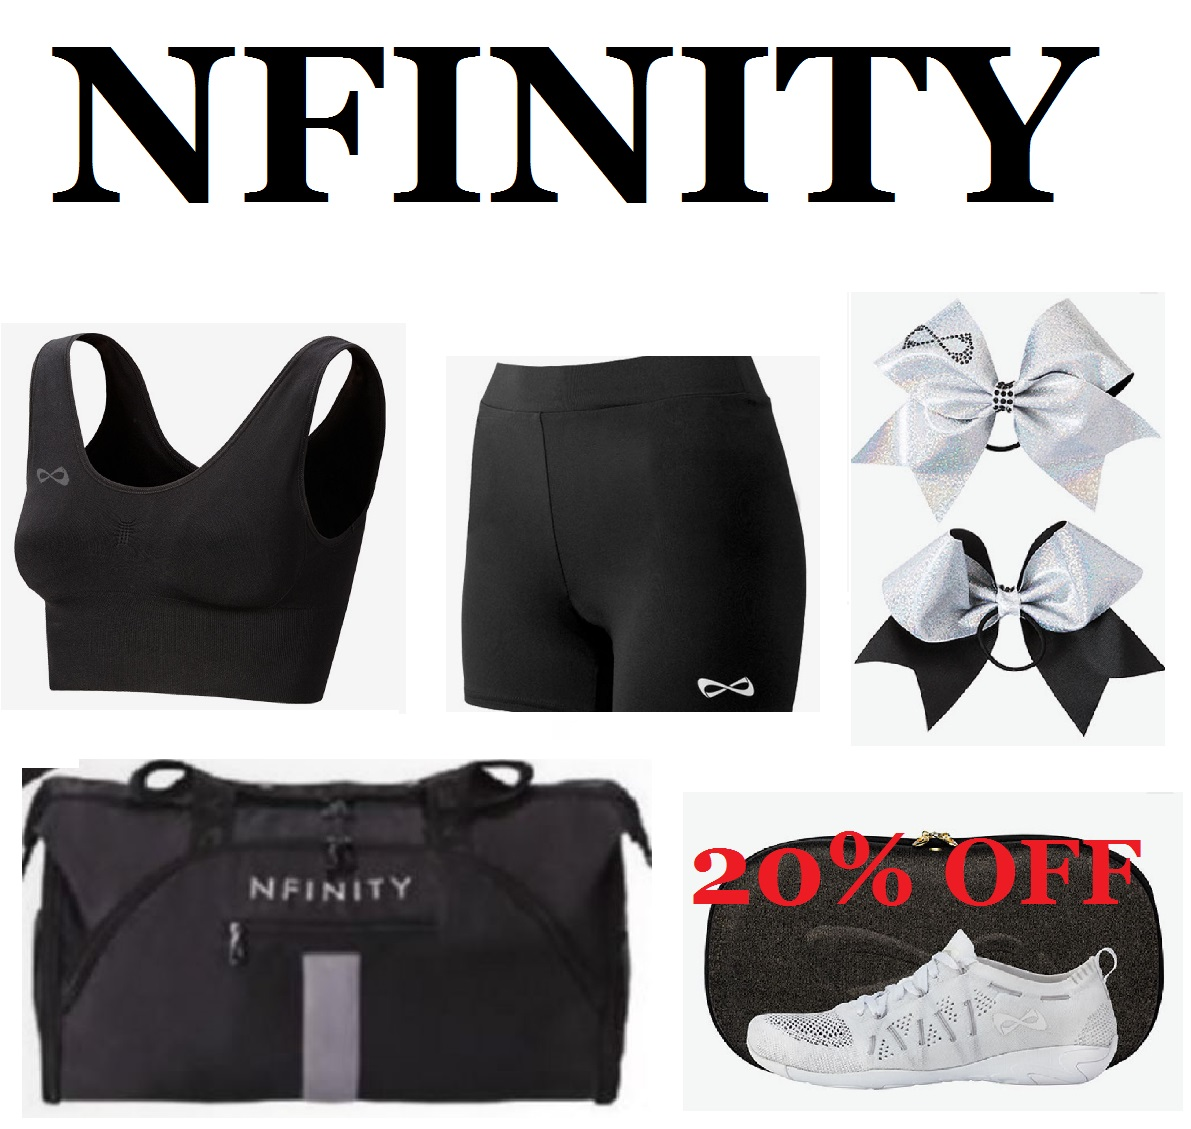 Nfinity Cheer Camp & Practice Pack